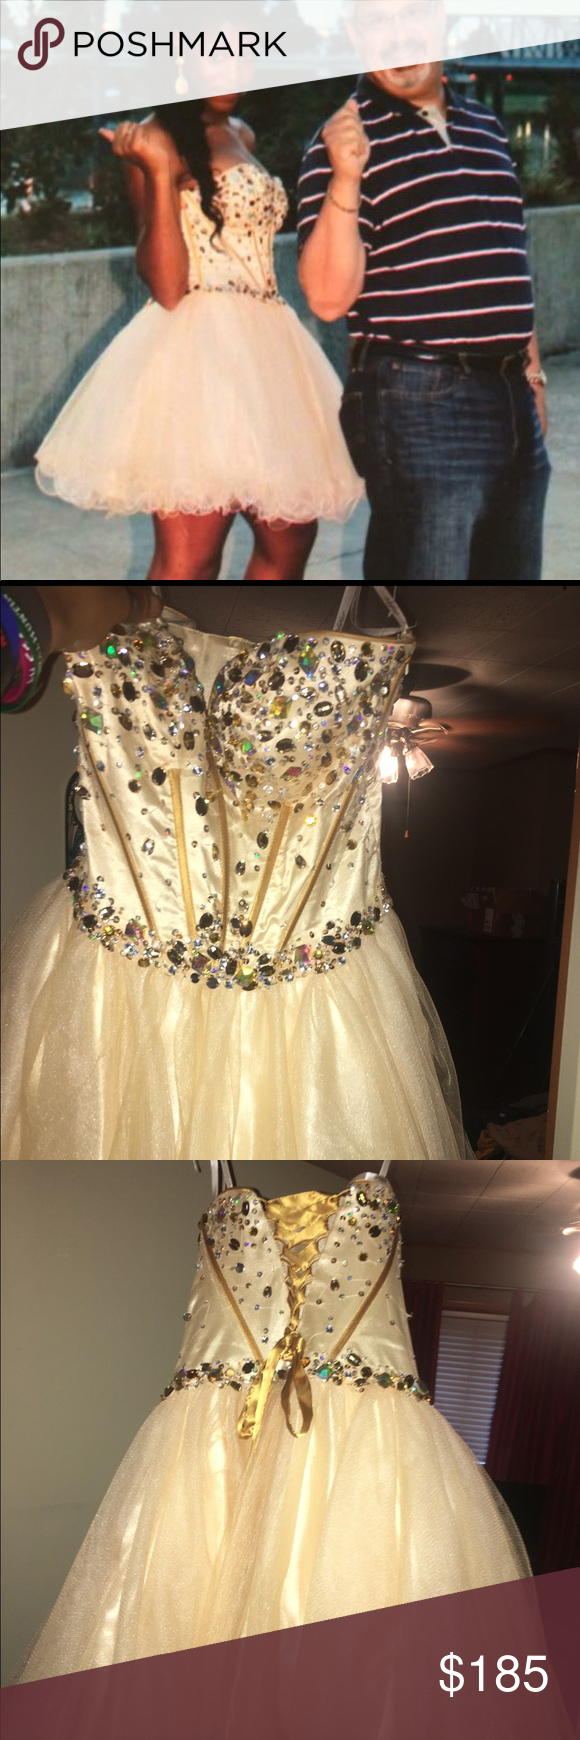 Gold prom dress gold bejeweled prom dress sherri hill size can be